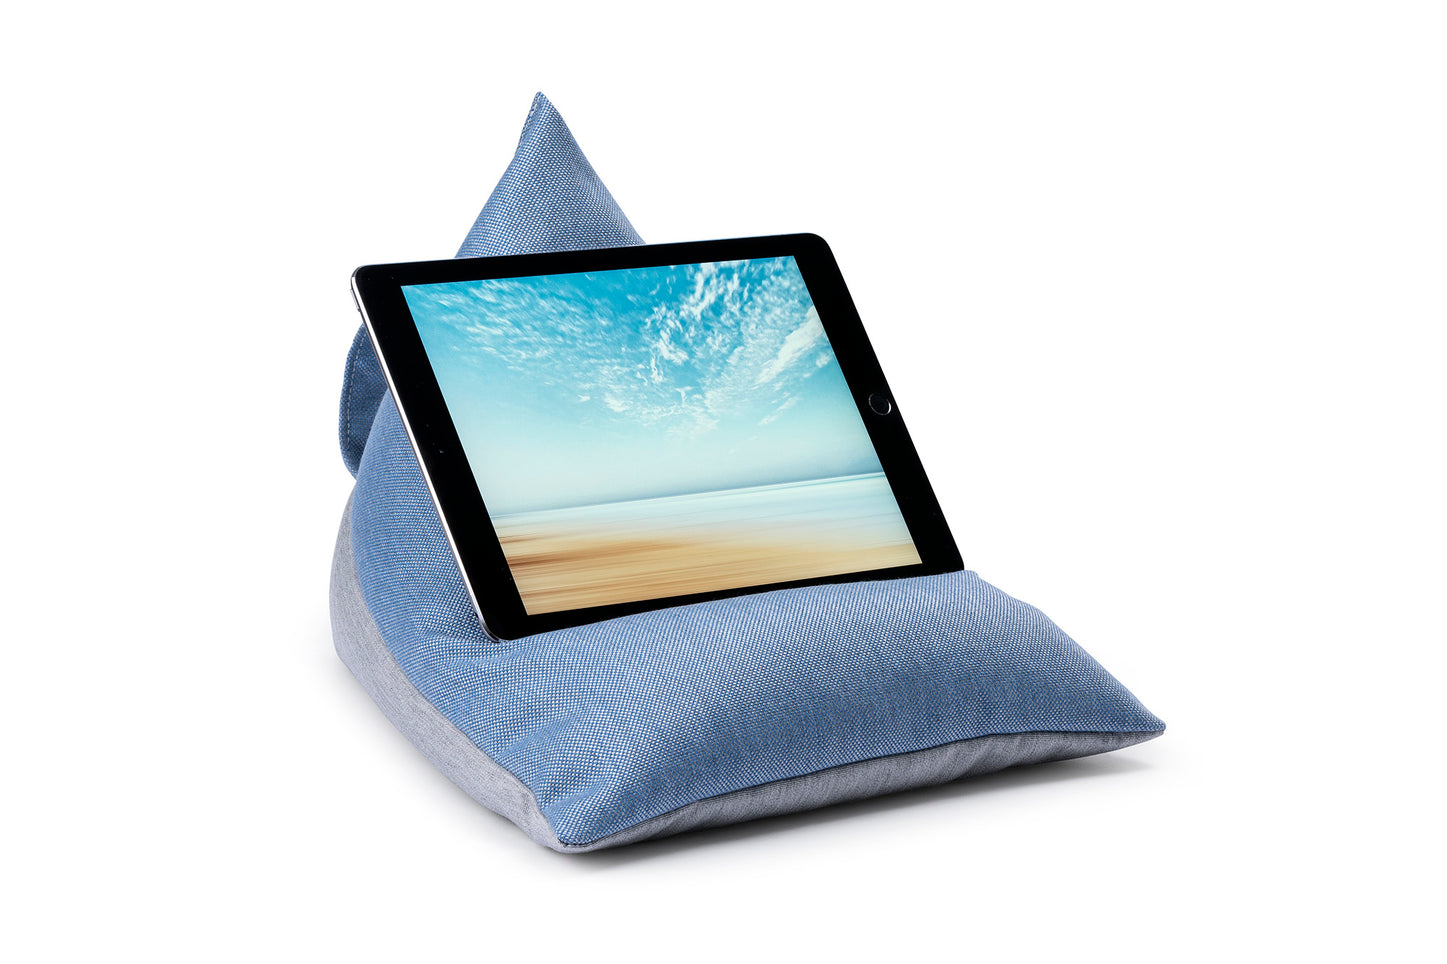 iPad, Tablet & eReader Bean Bag Stand in Cuba Ice/Grey Base